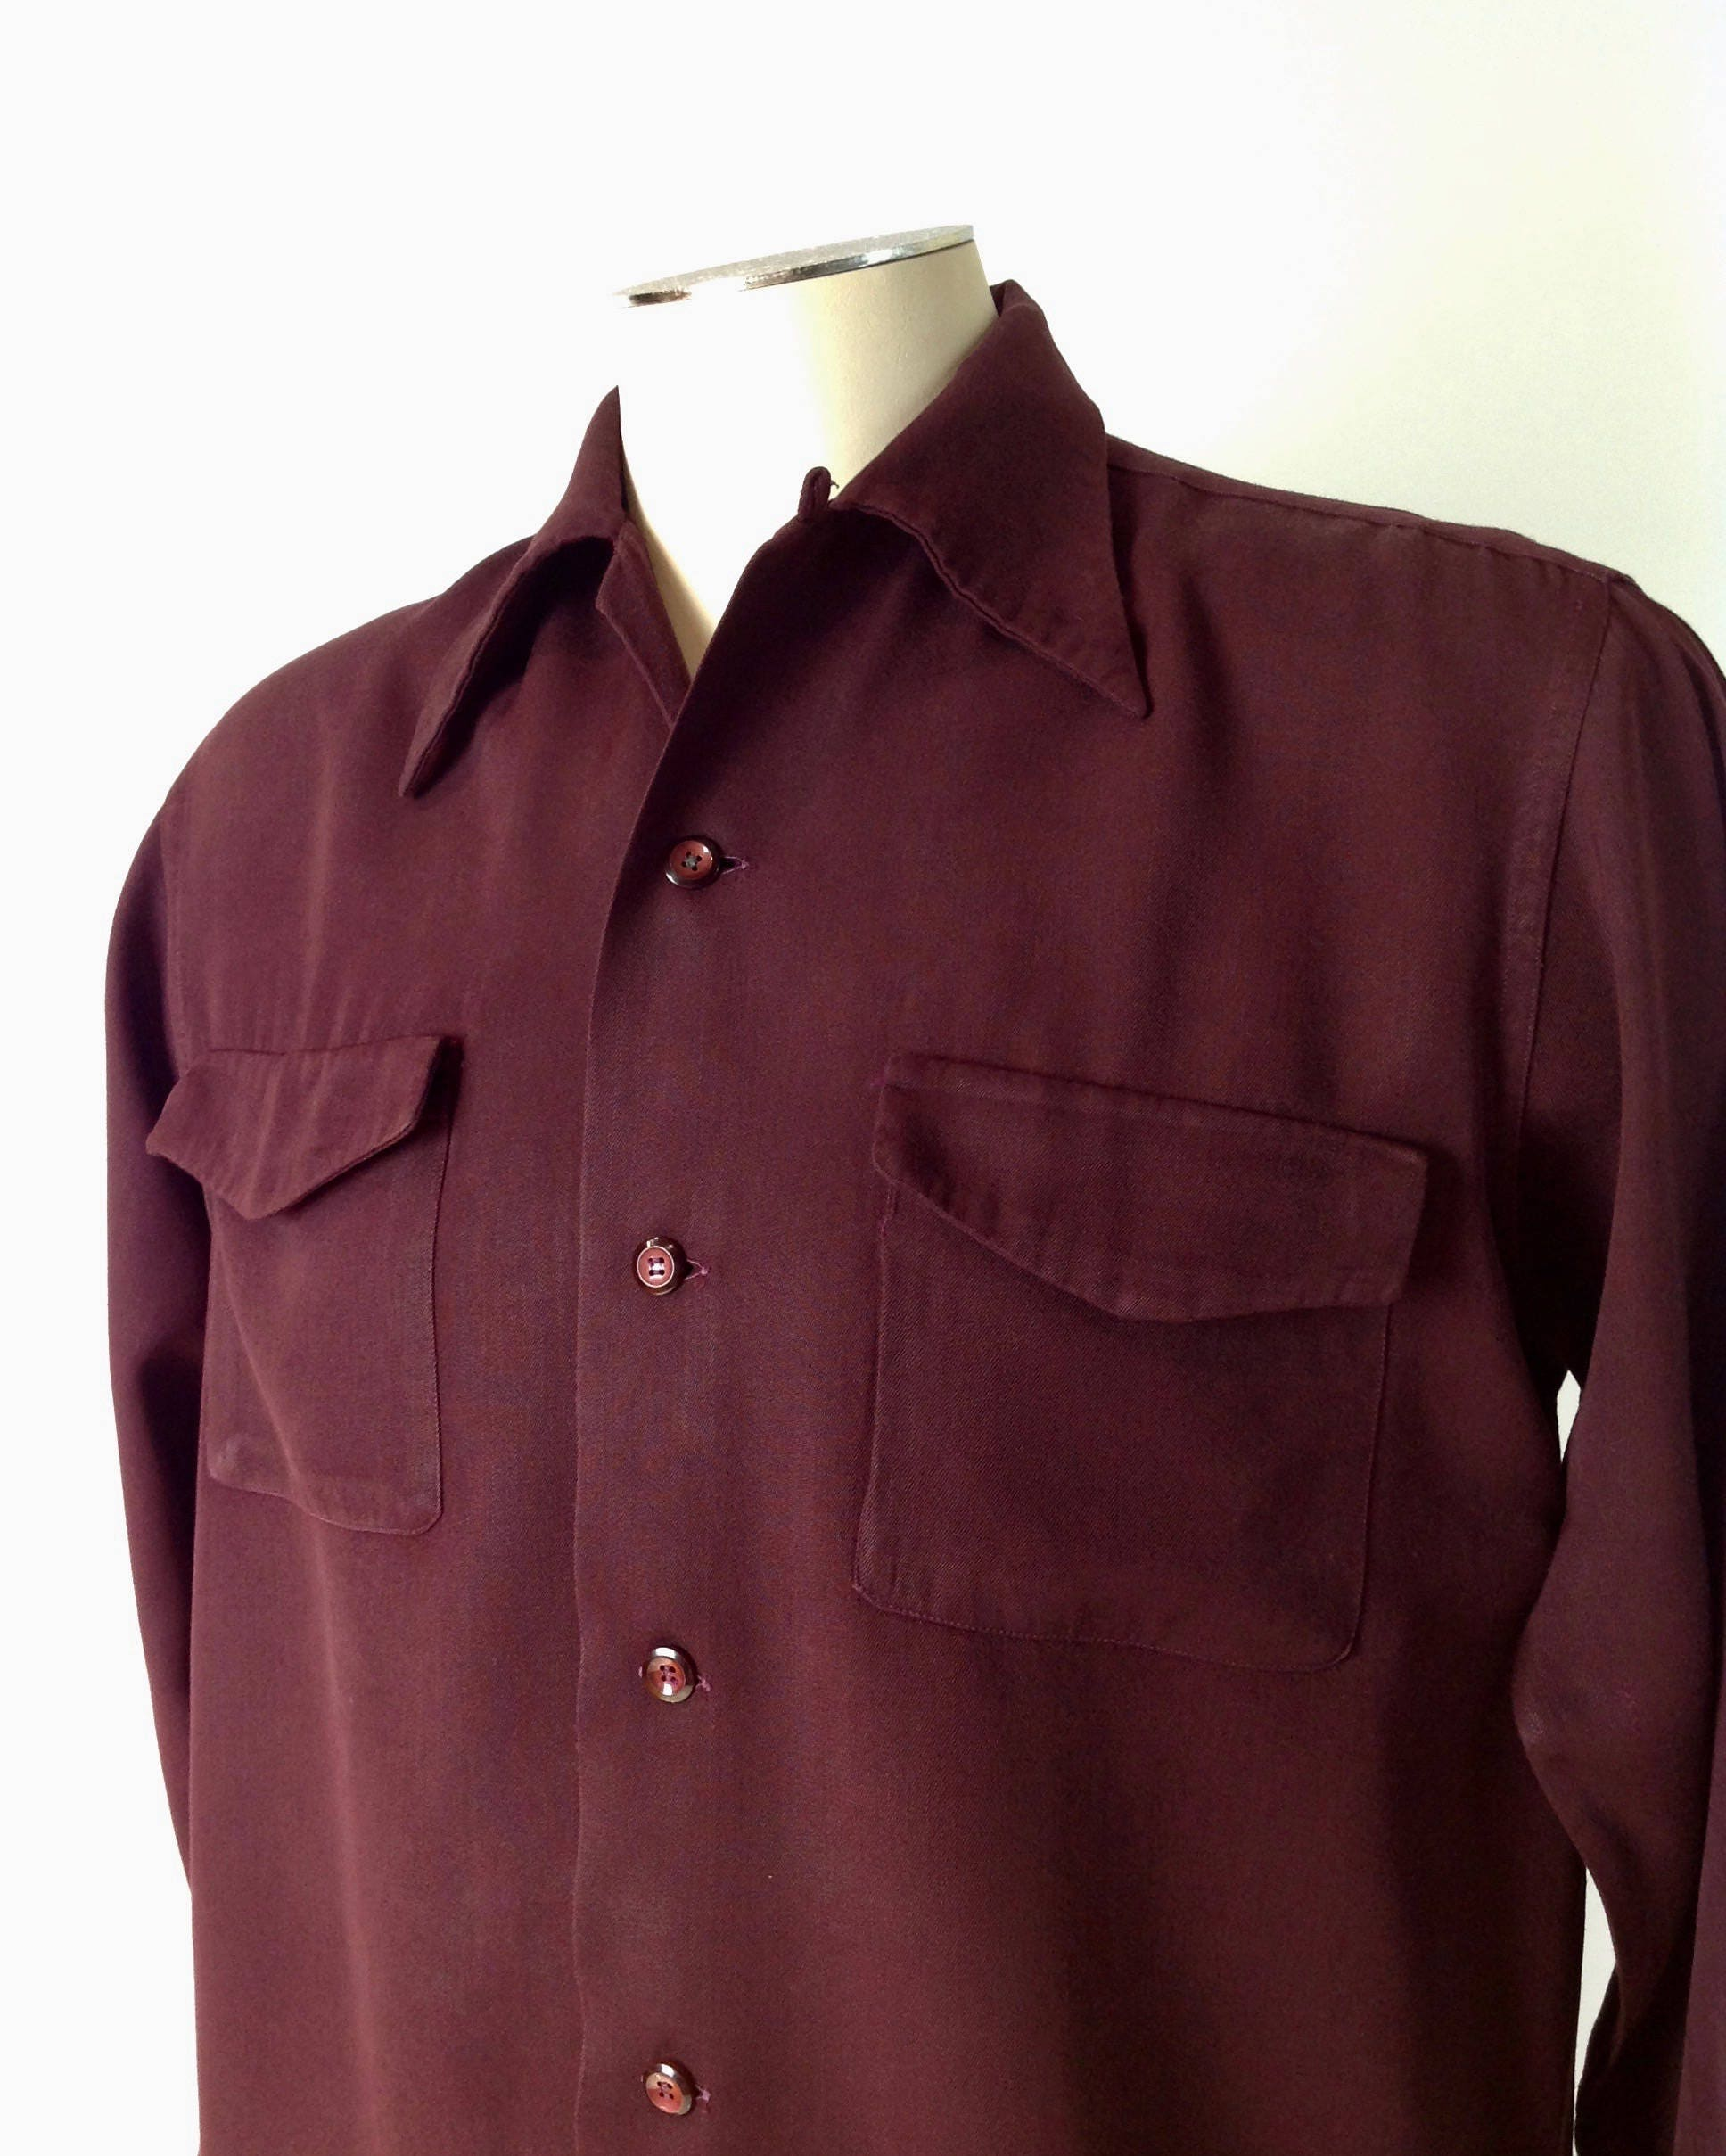 1940s Men's Shirts, Sweaters, Vests 1940s Gabardine Shirt - Deep Maroon Rayon Flap Patch Pockets Loop Collar Mens Medium $22.95 AT vintagedancer.com